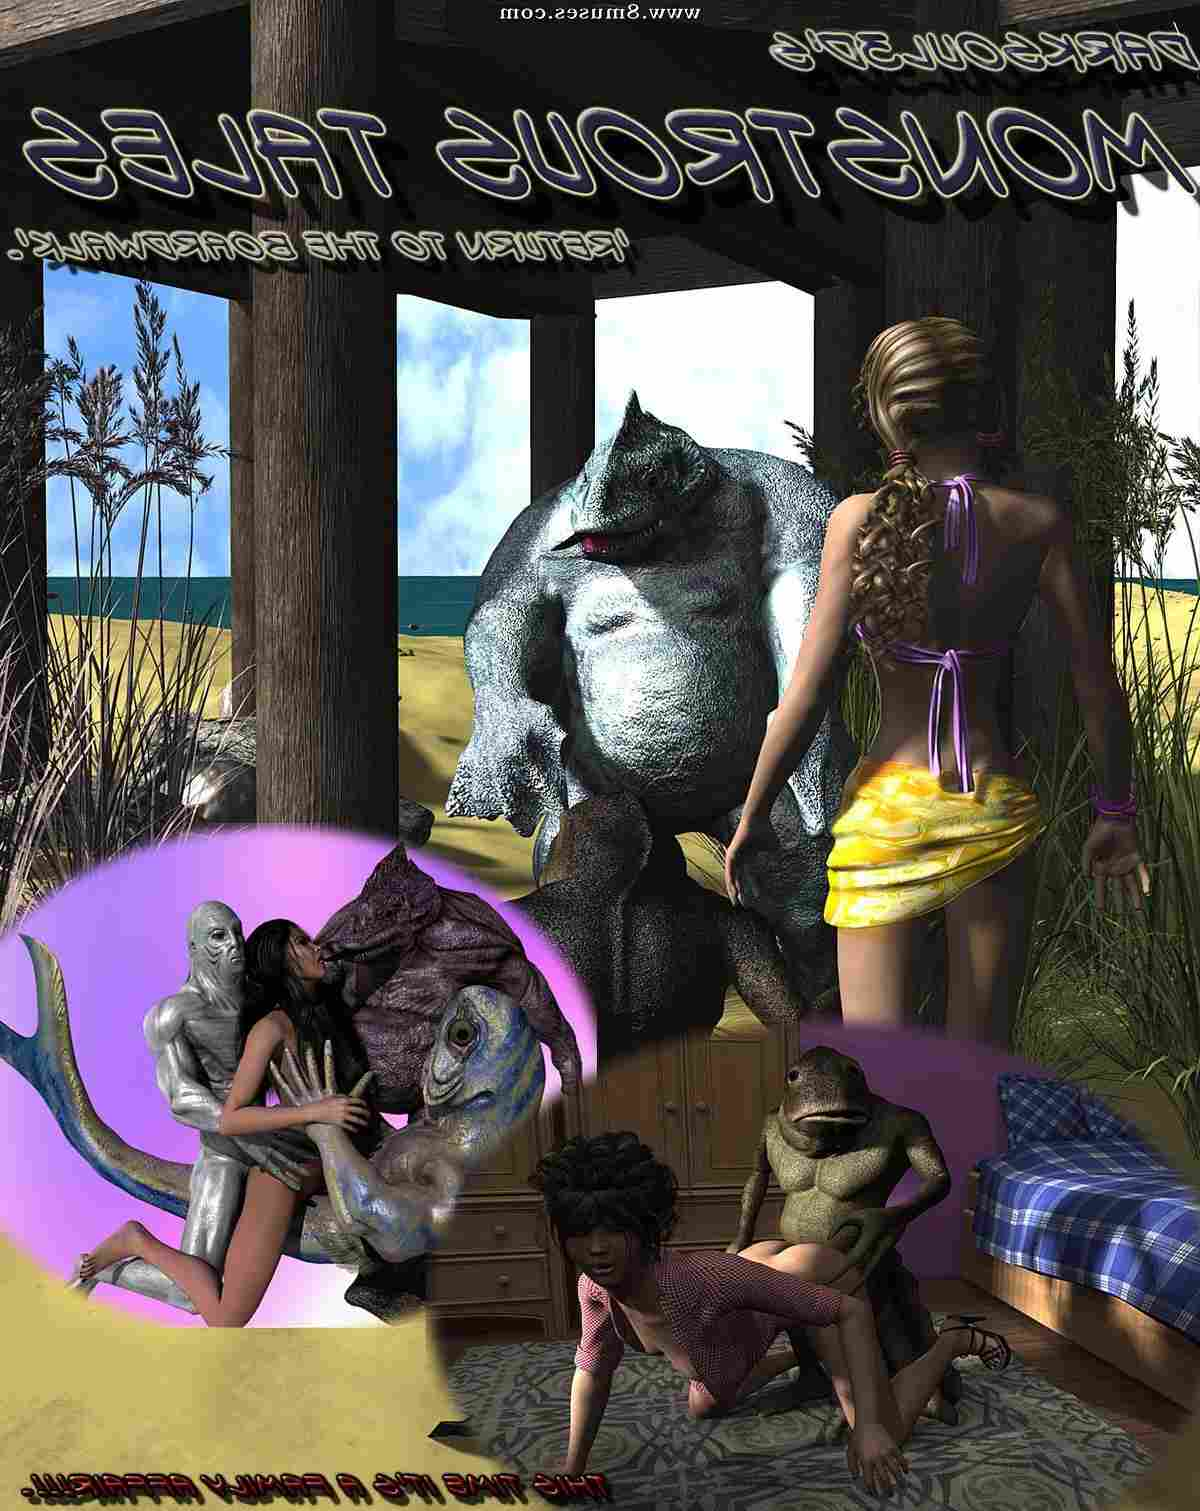 DarkSoul3D-Comics/Monstrous-Tales-Return-To-The-Boardwalk Monstrous_Tales_-_Return_To_The_Boardwalk__8muses_-_Sex_and_Porn_Comics.jpg